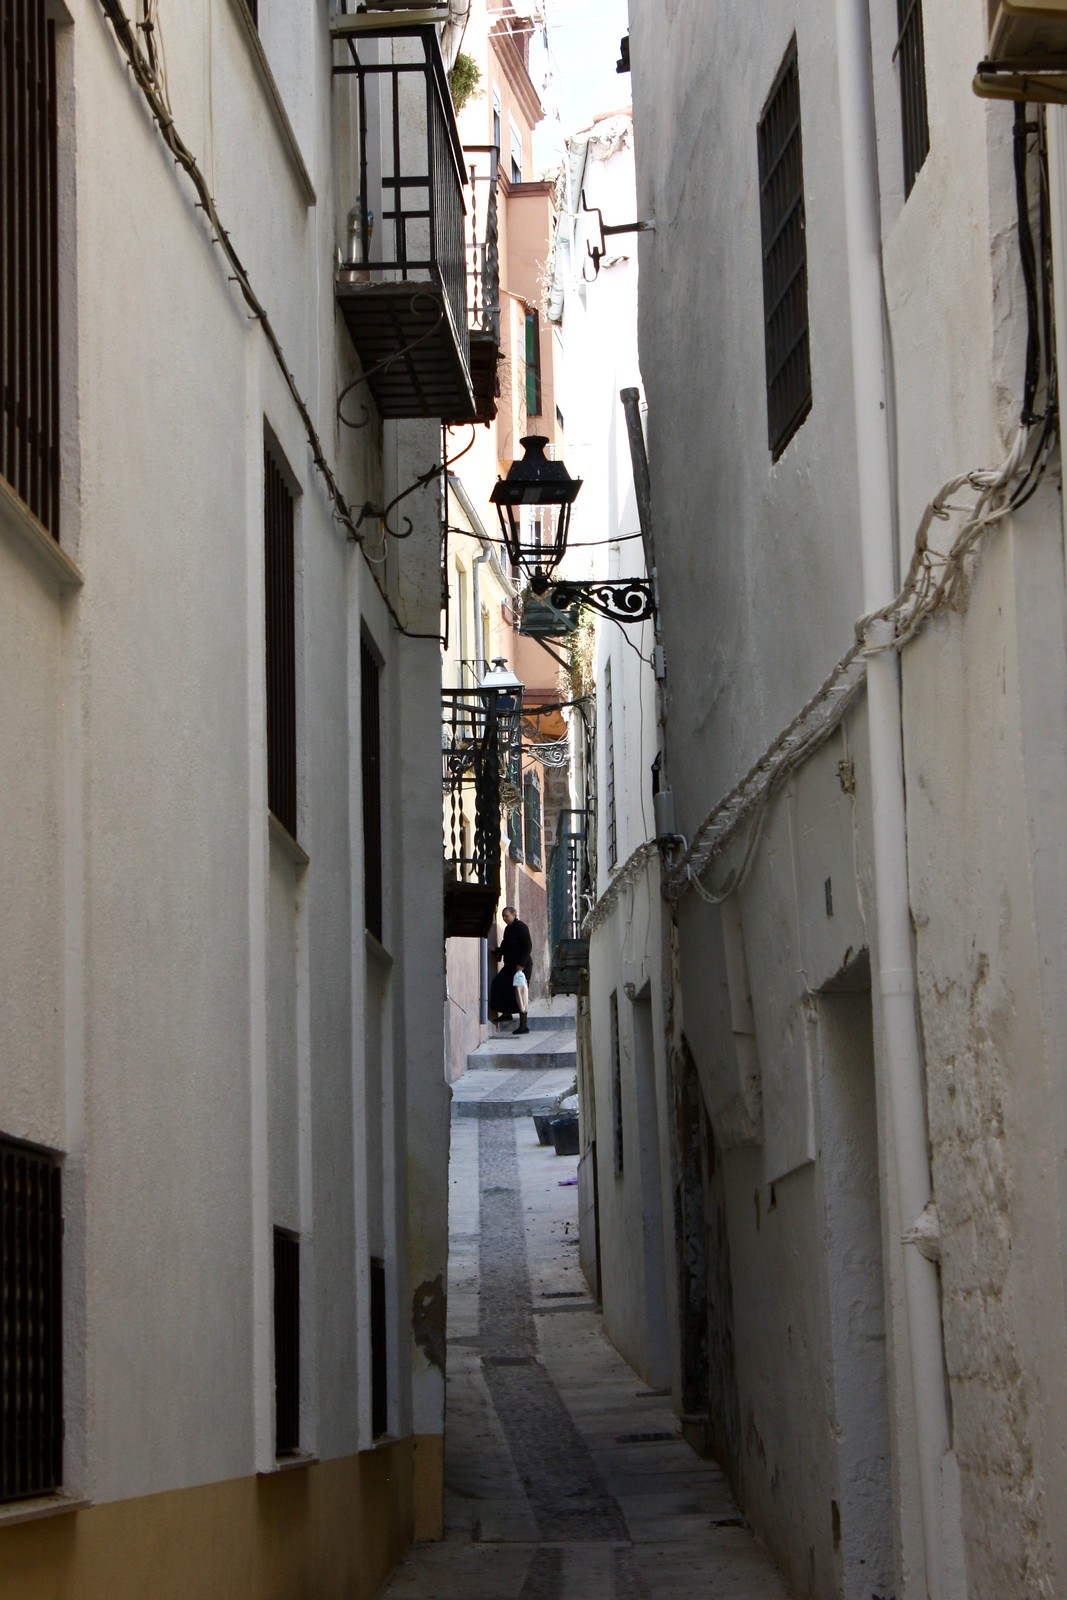 Narrow streets of the Jewish quarter of Jaén, Spain